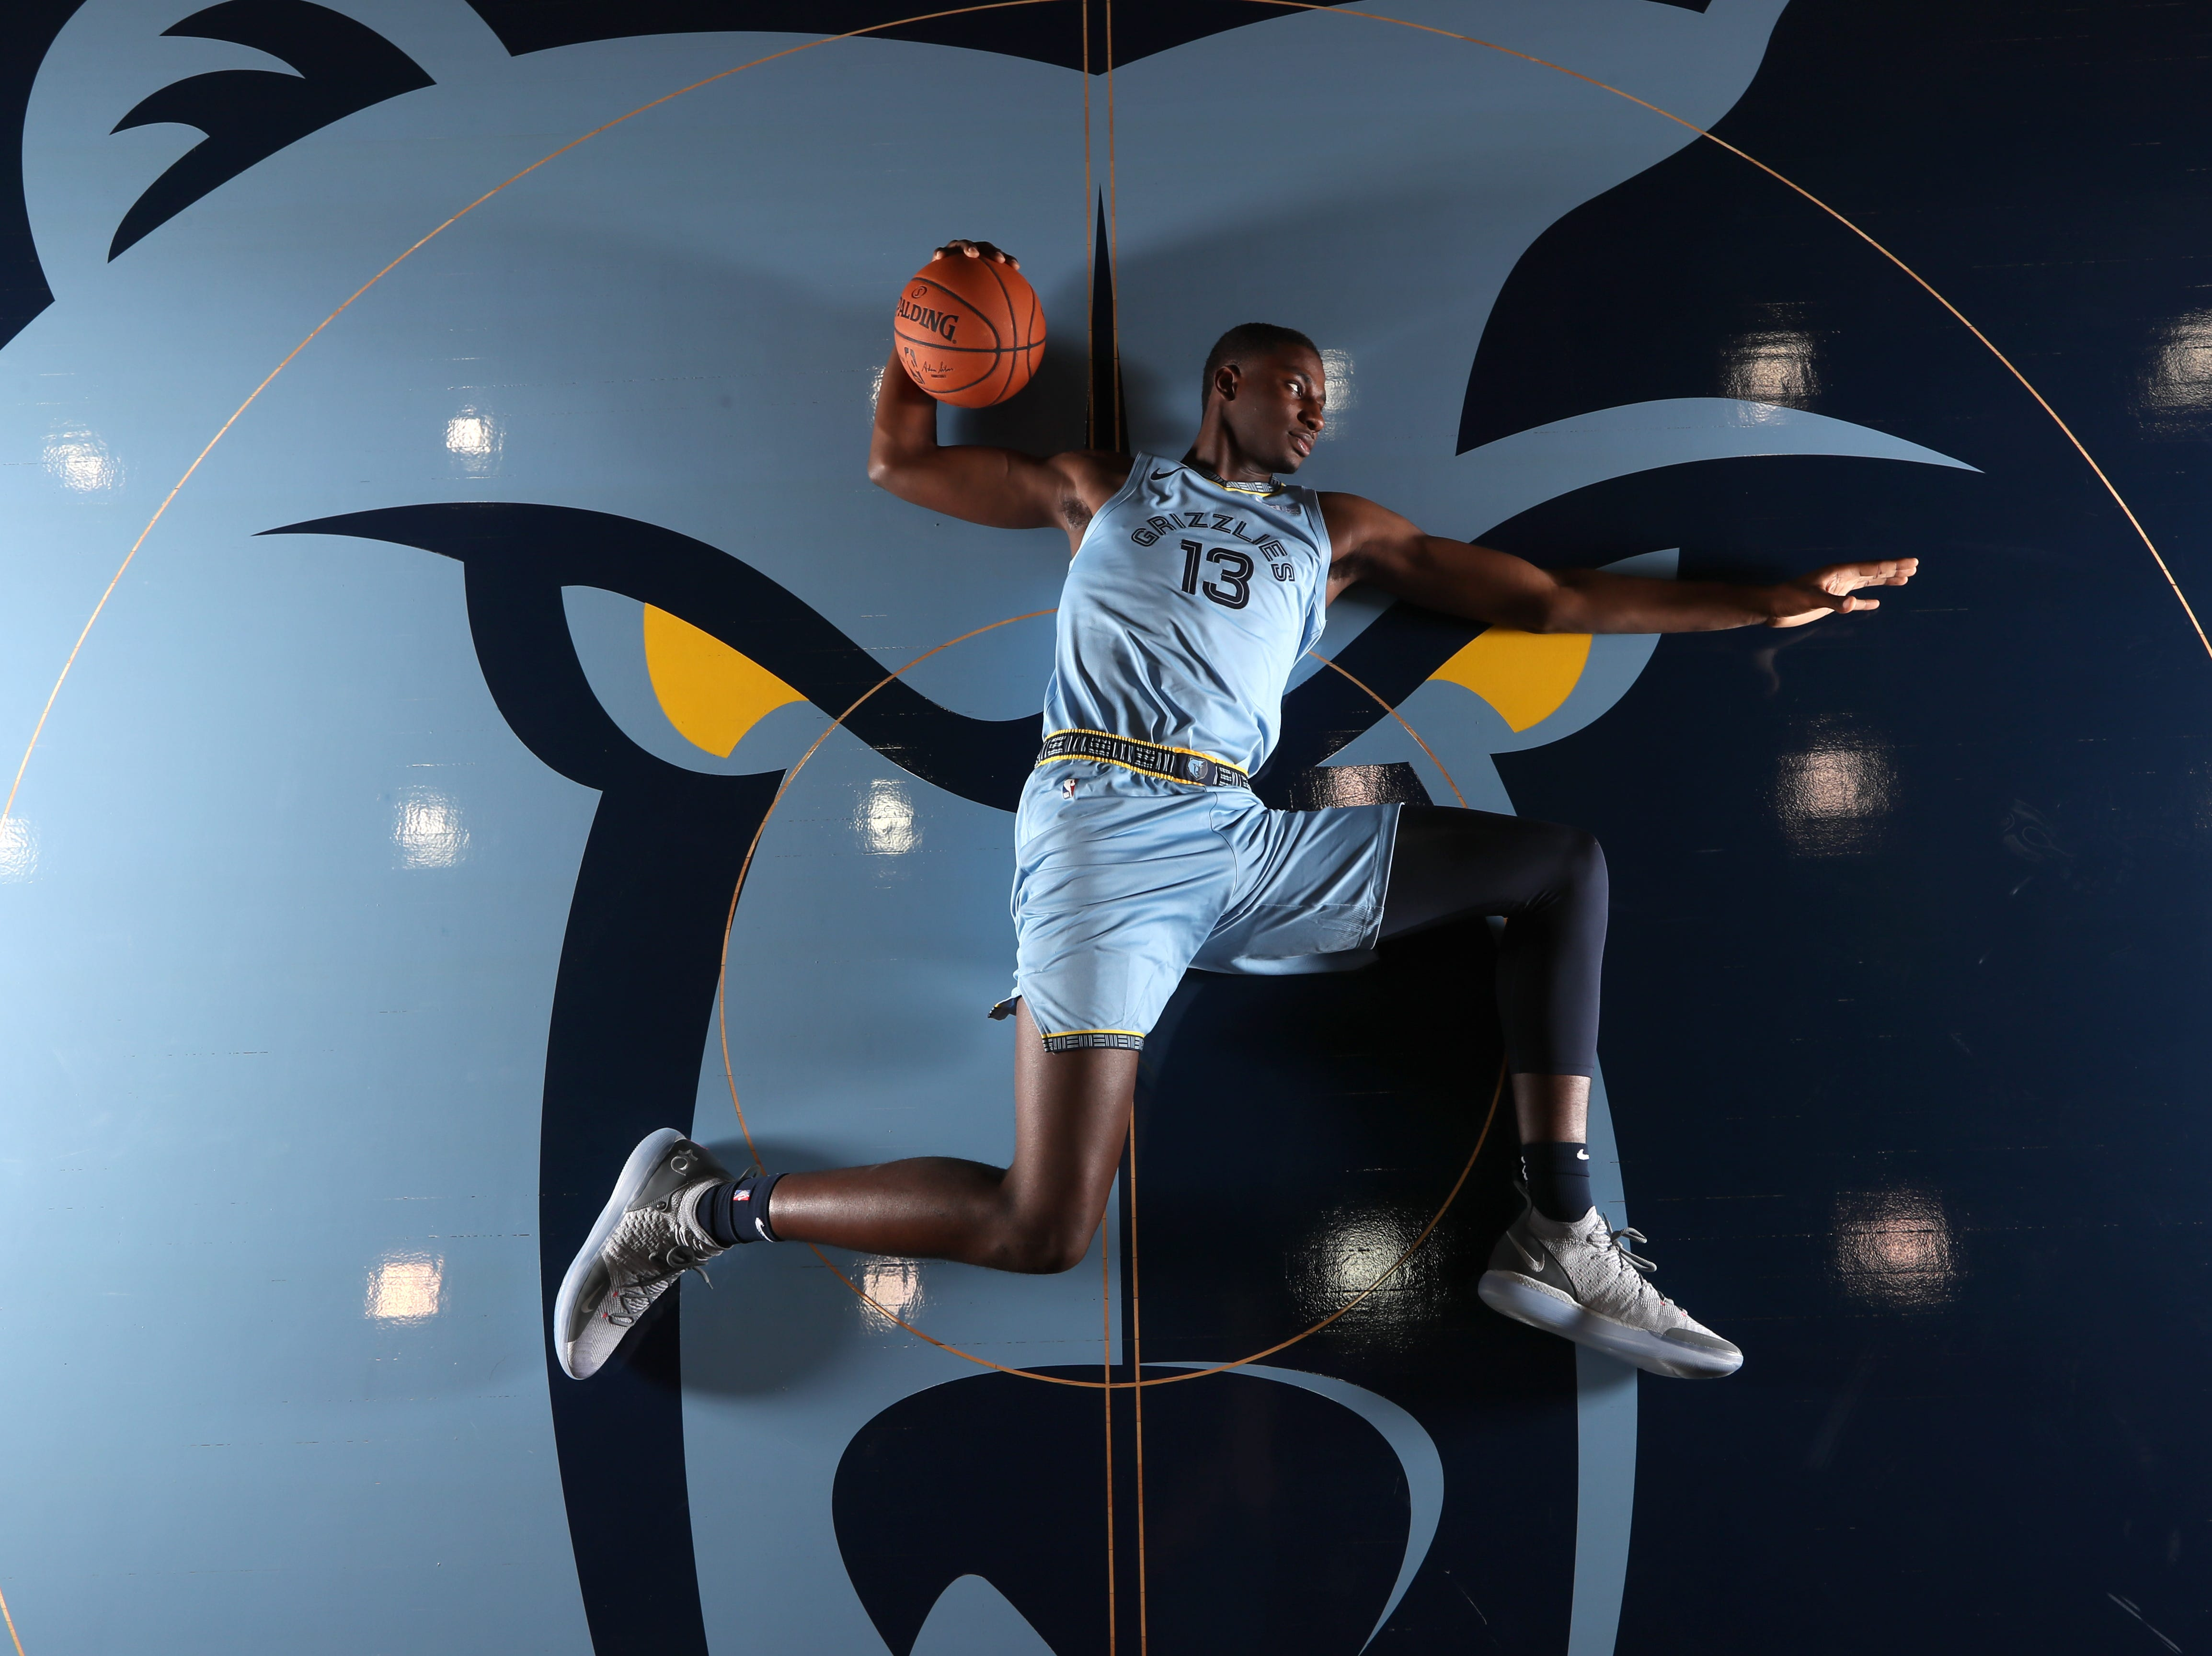 Memphis Grizzlies Jaren Jackson Jr. during their media day to kick off the season at the FedEx Forum on Monday, Sept. 24, 2018.